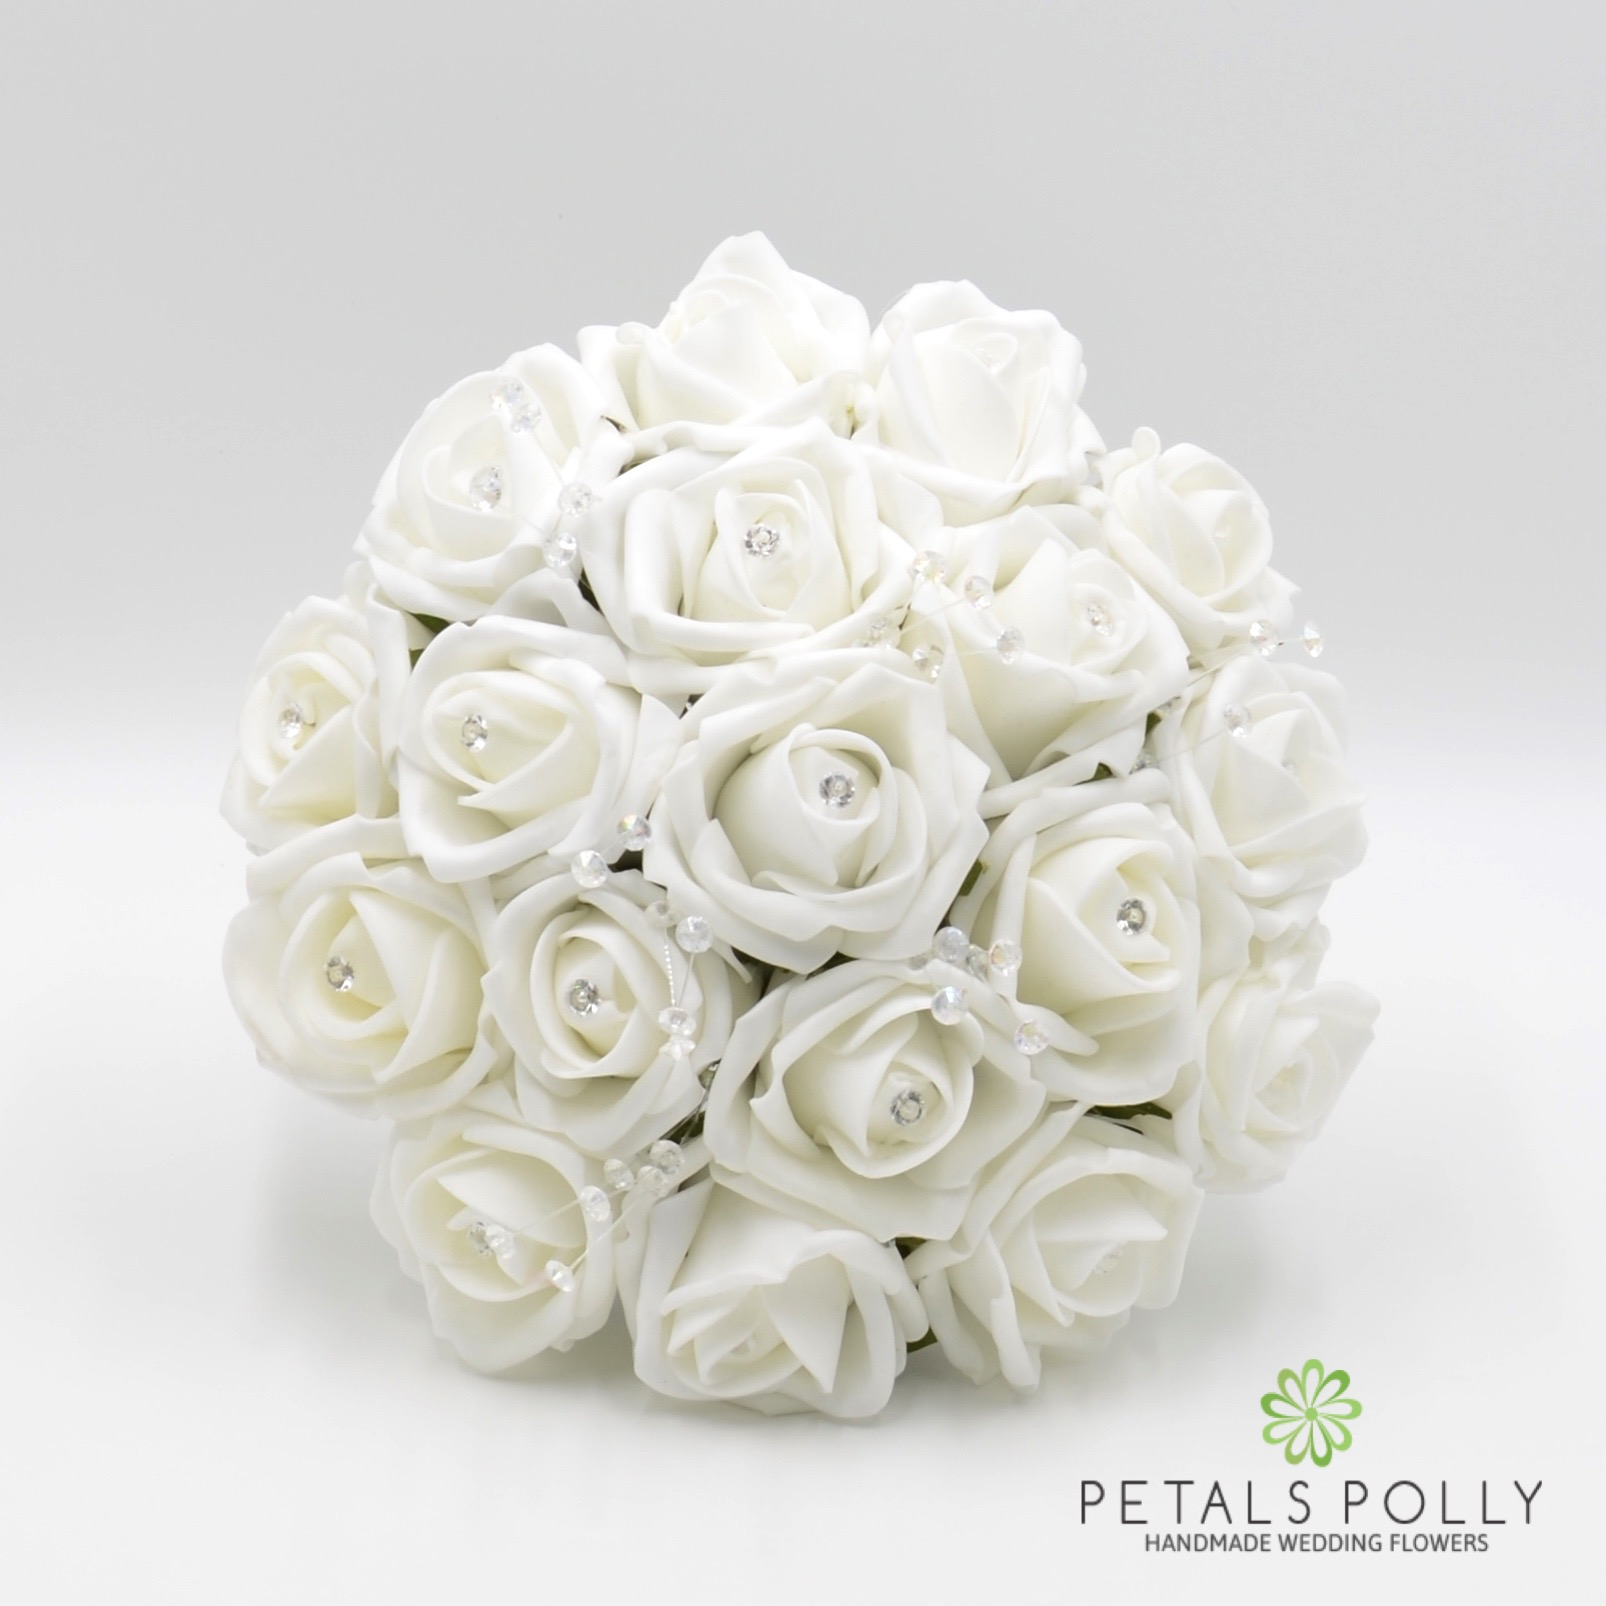 White Foam Rose Bridesmaids Posy With Crystal Stems Diamant Rose